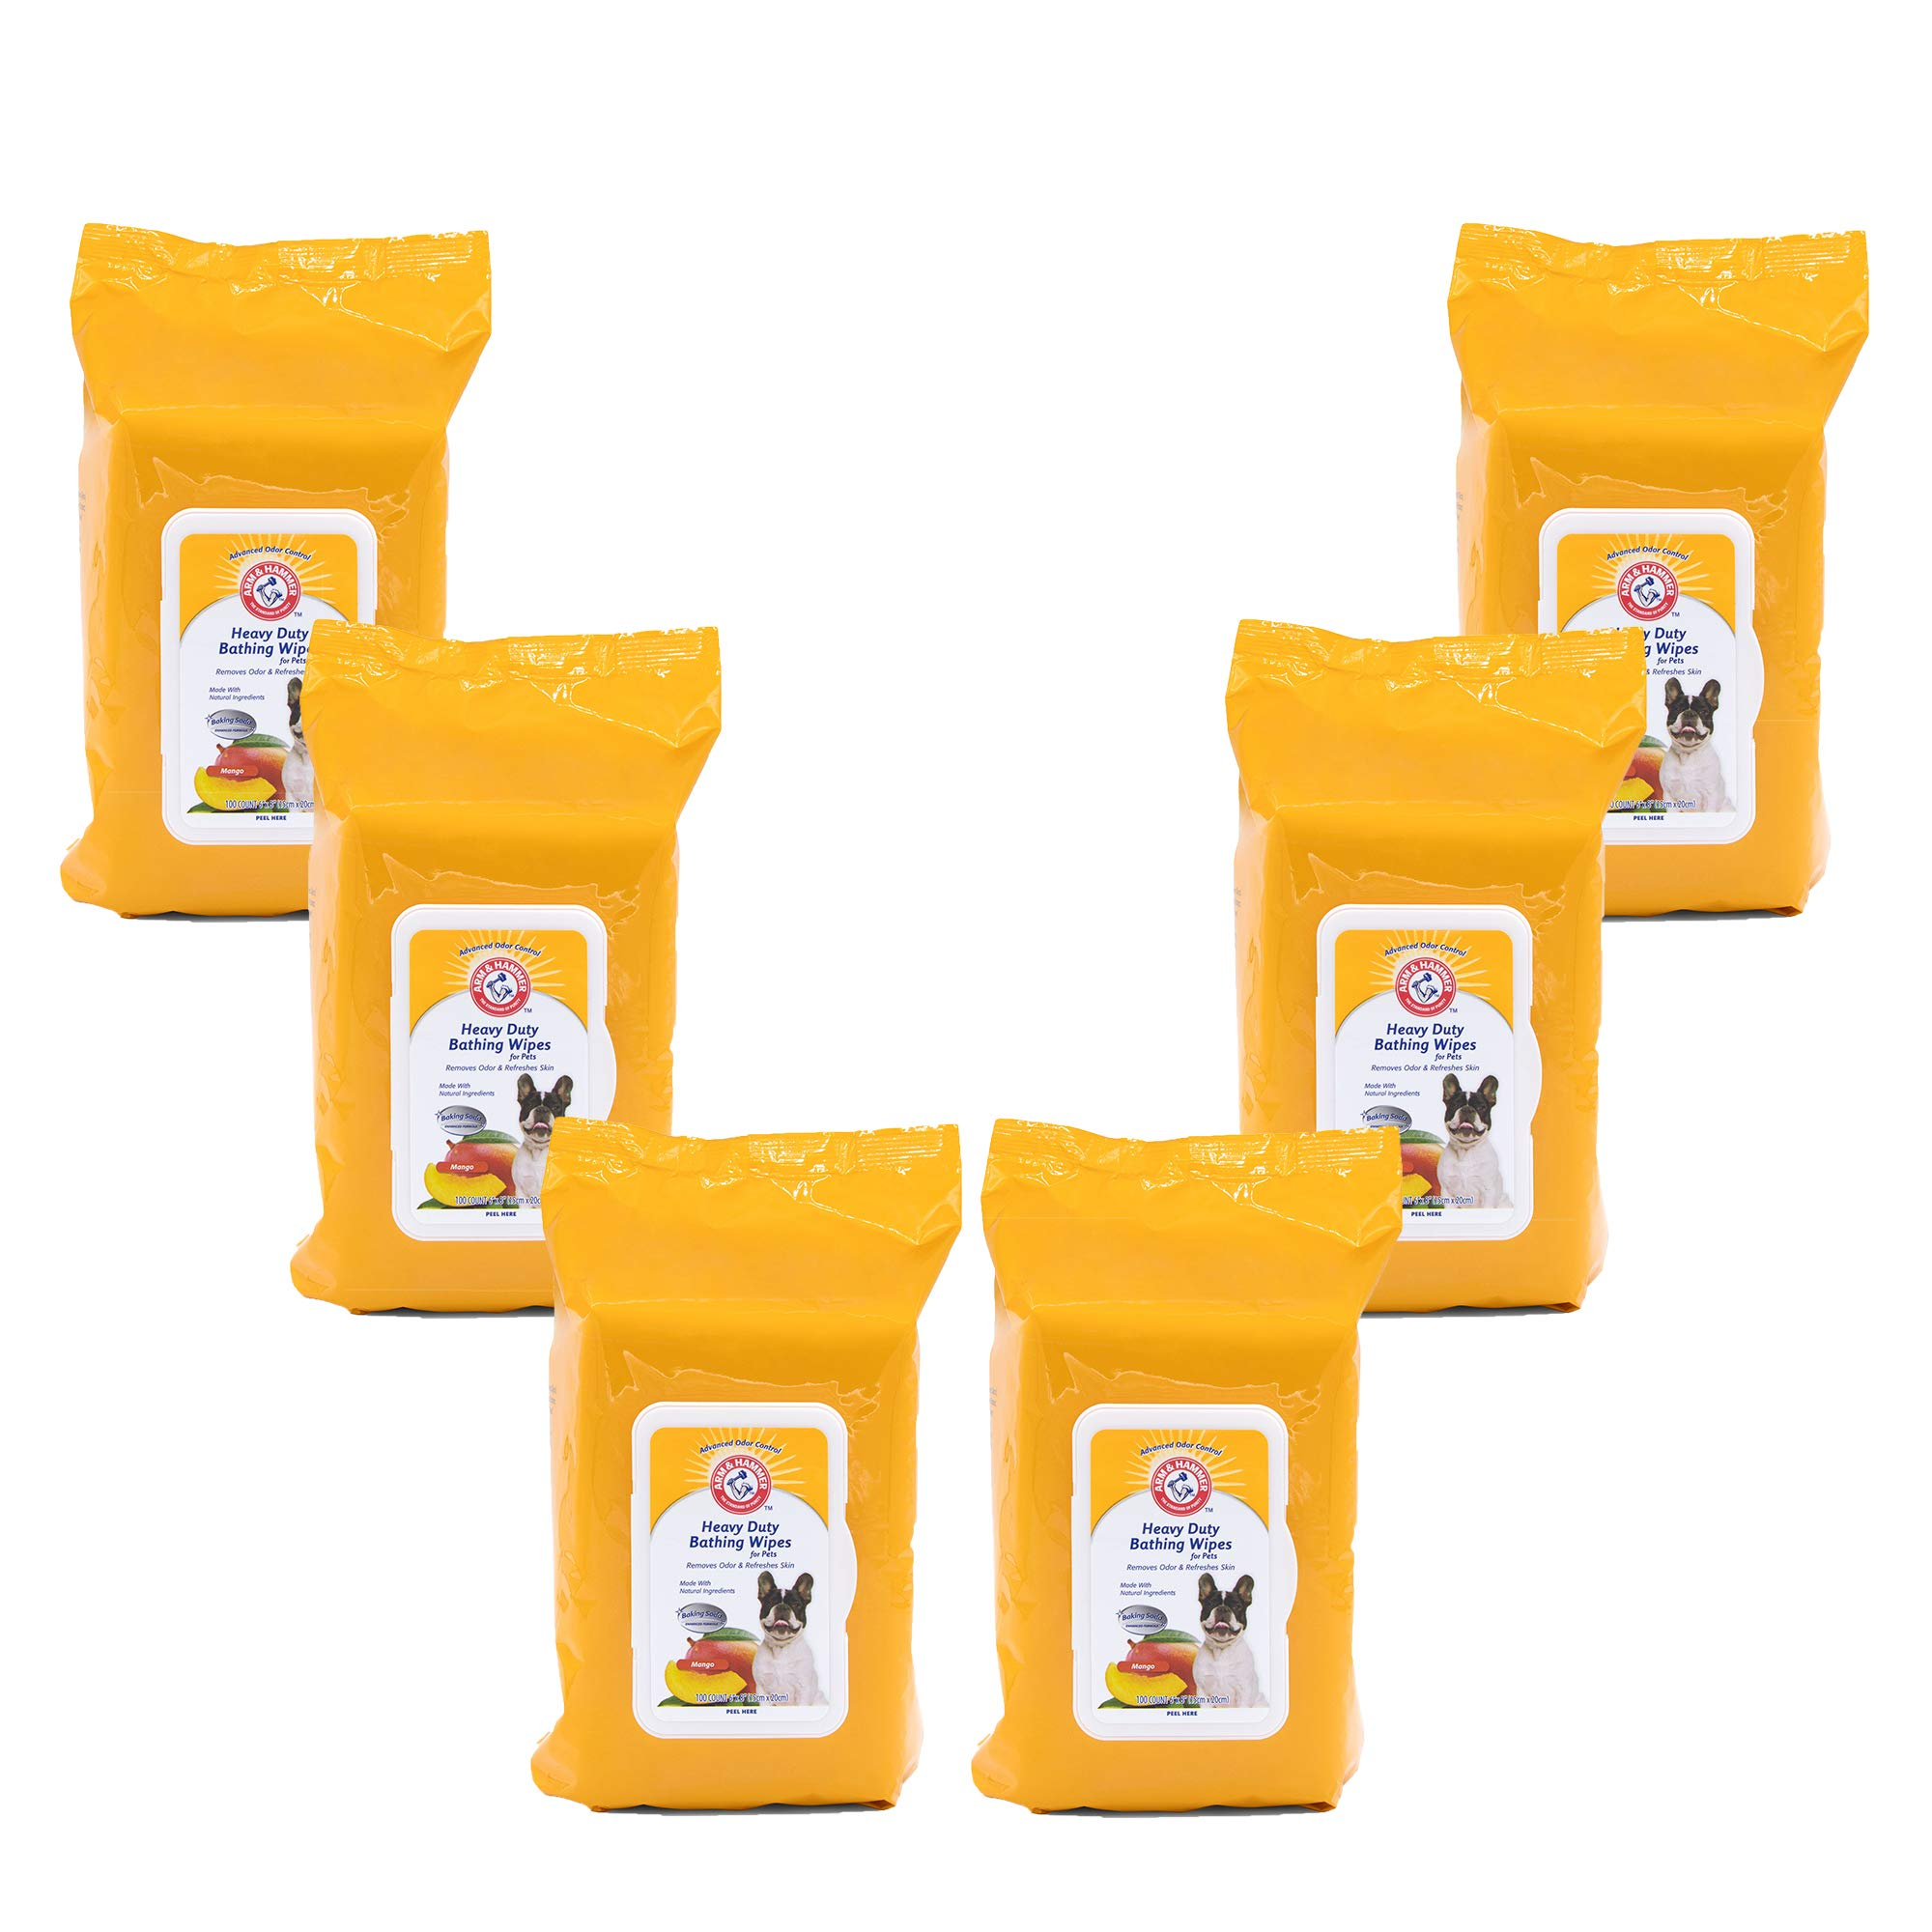 Arm & Hammer Heavy Duty Multipurpose Pet Bath Wipes | Dog Wipes Remove Odor & Refreshes Skin | Mango, 100 Count - 6 Pack